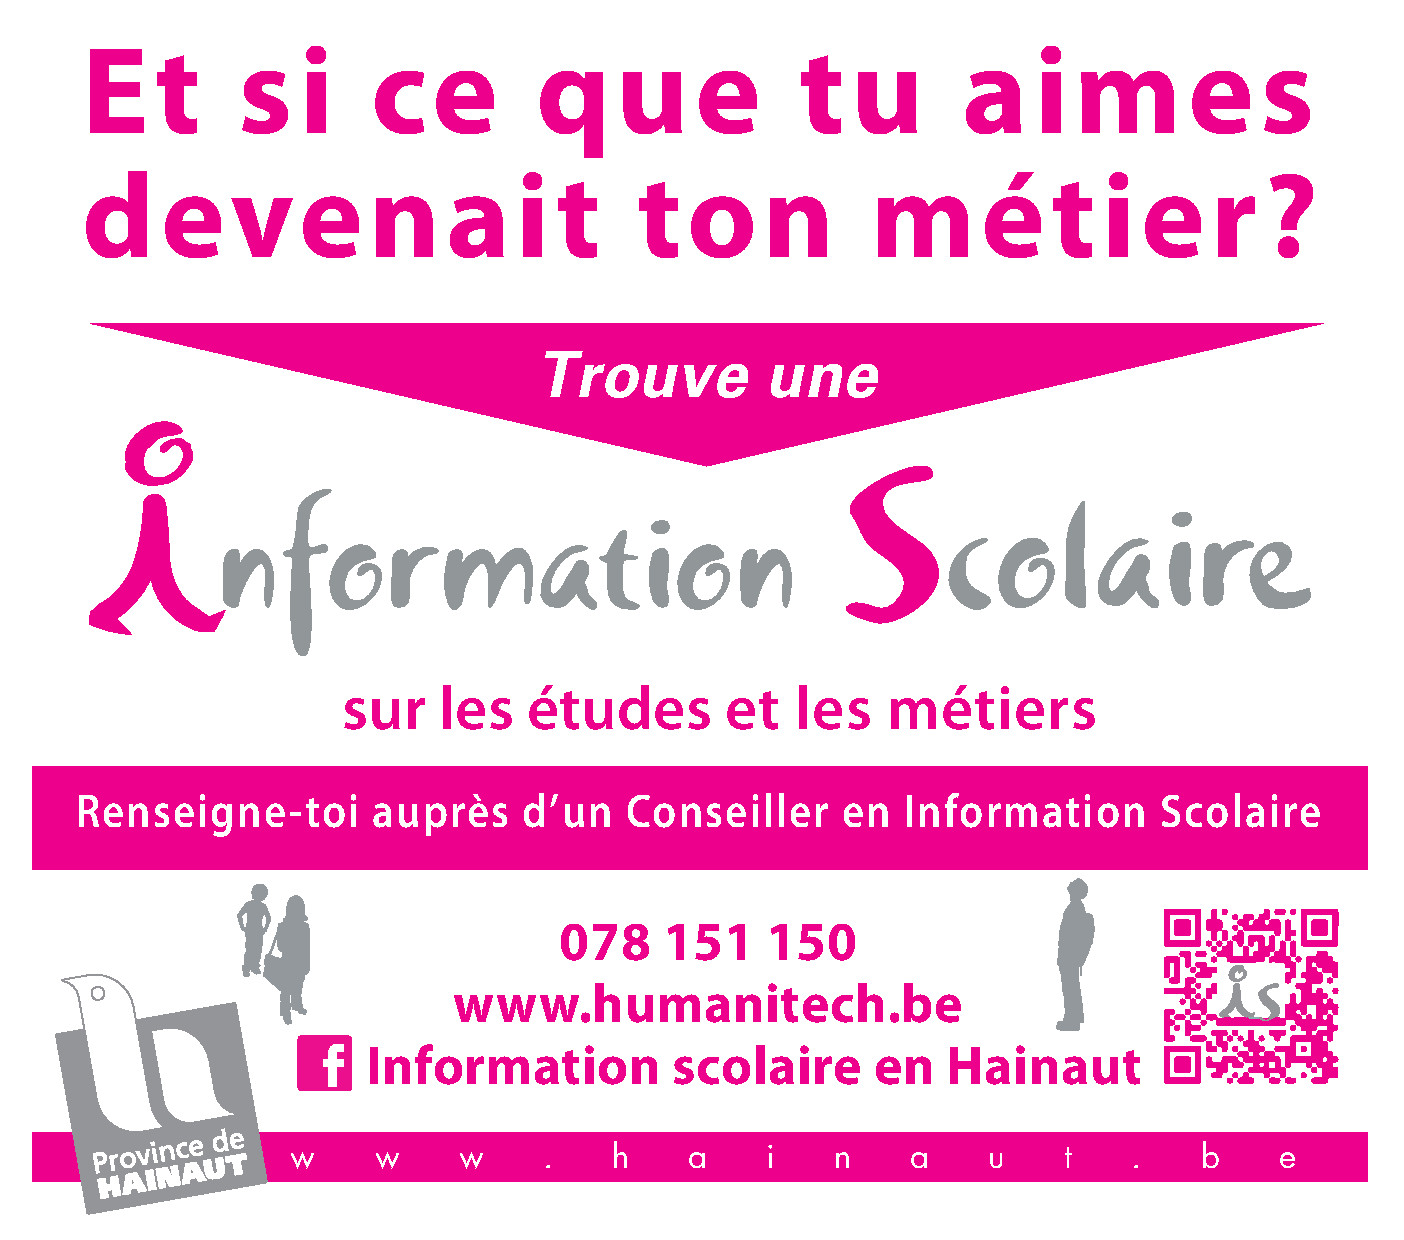 Information scolaire